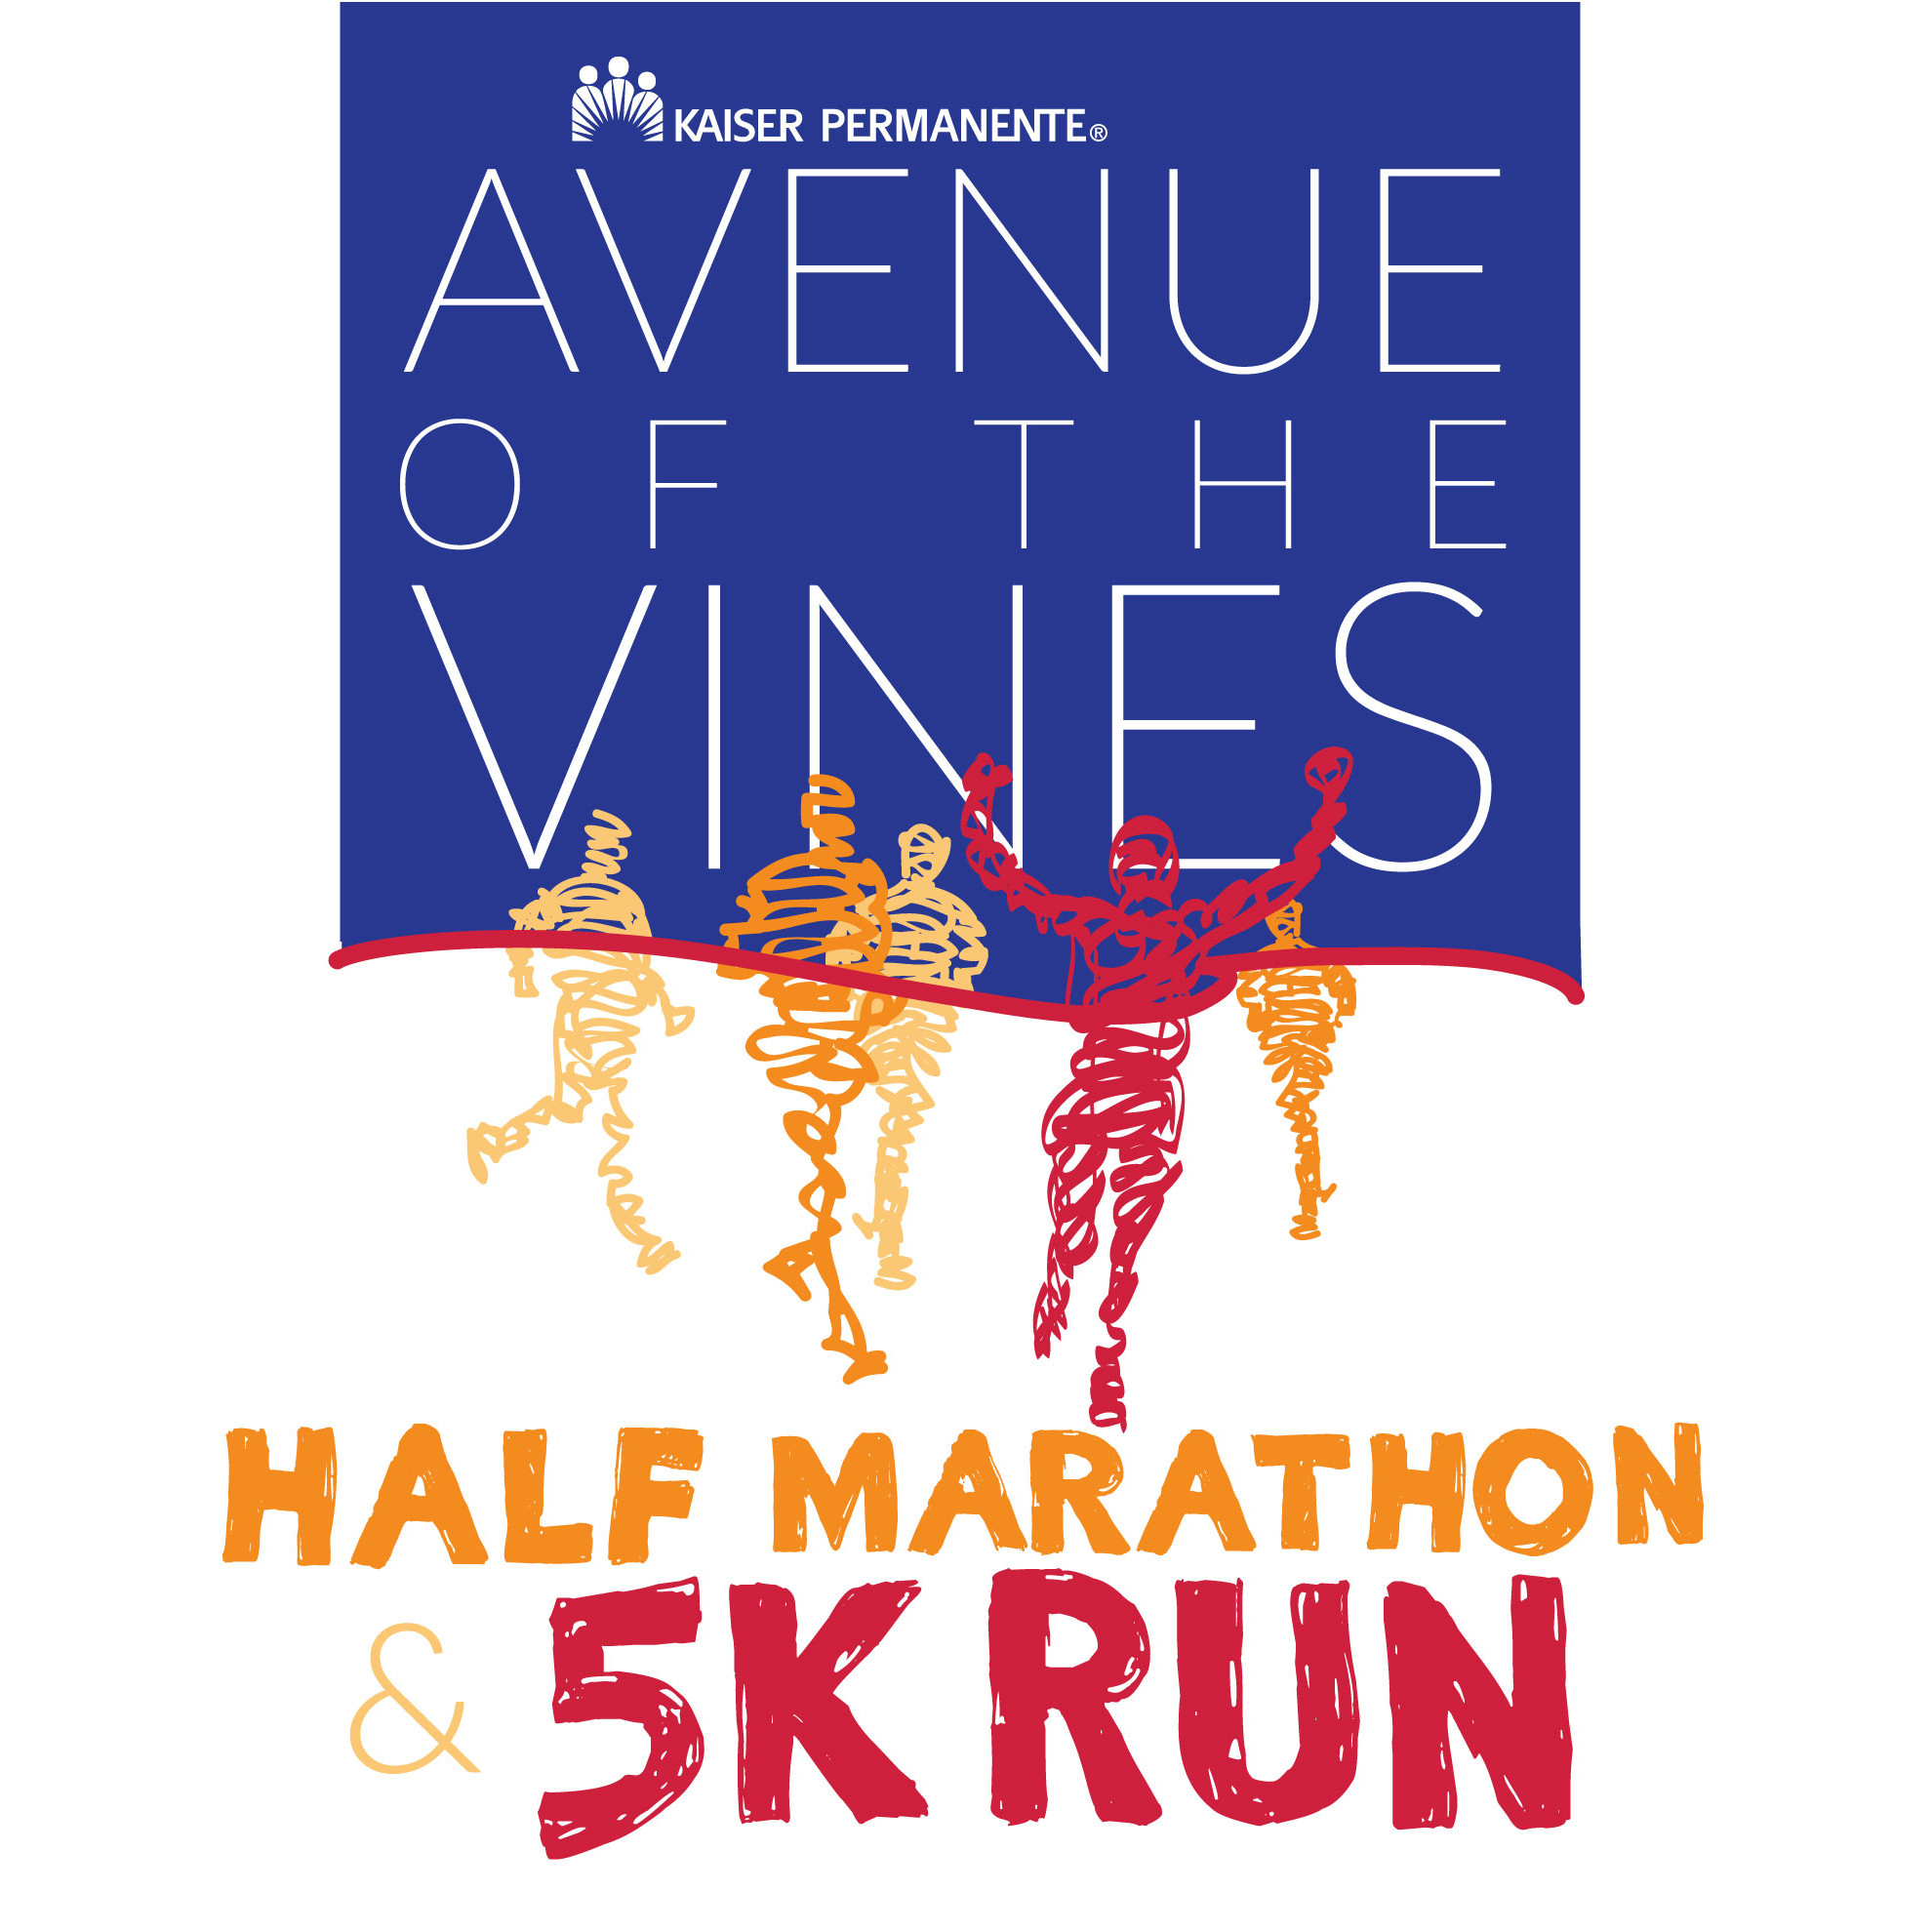 2019 — Kaiser Permanente Avenue of the Vines Half Marathon &